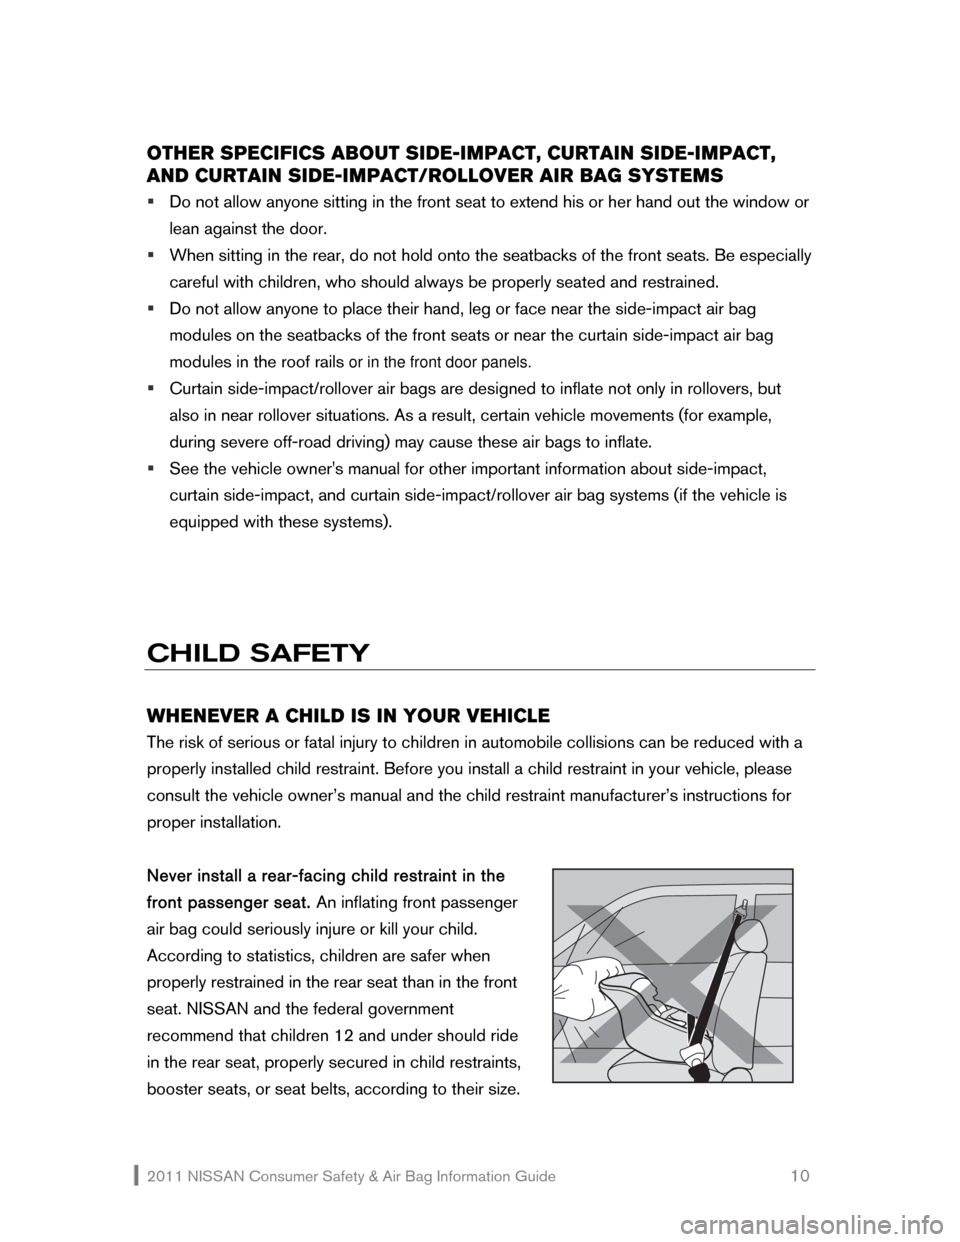 NISSAN ROGUE 2011 1.G Consumer Safety Air Bag Information Guide, Page 11